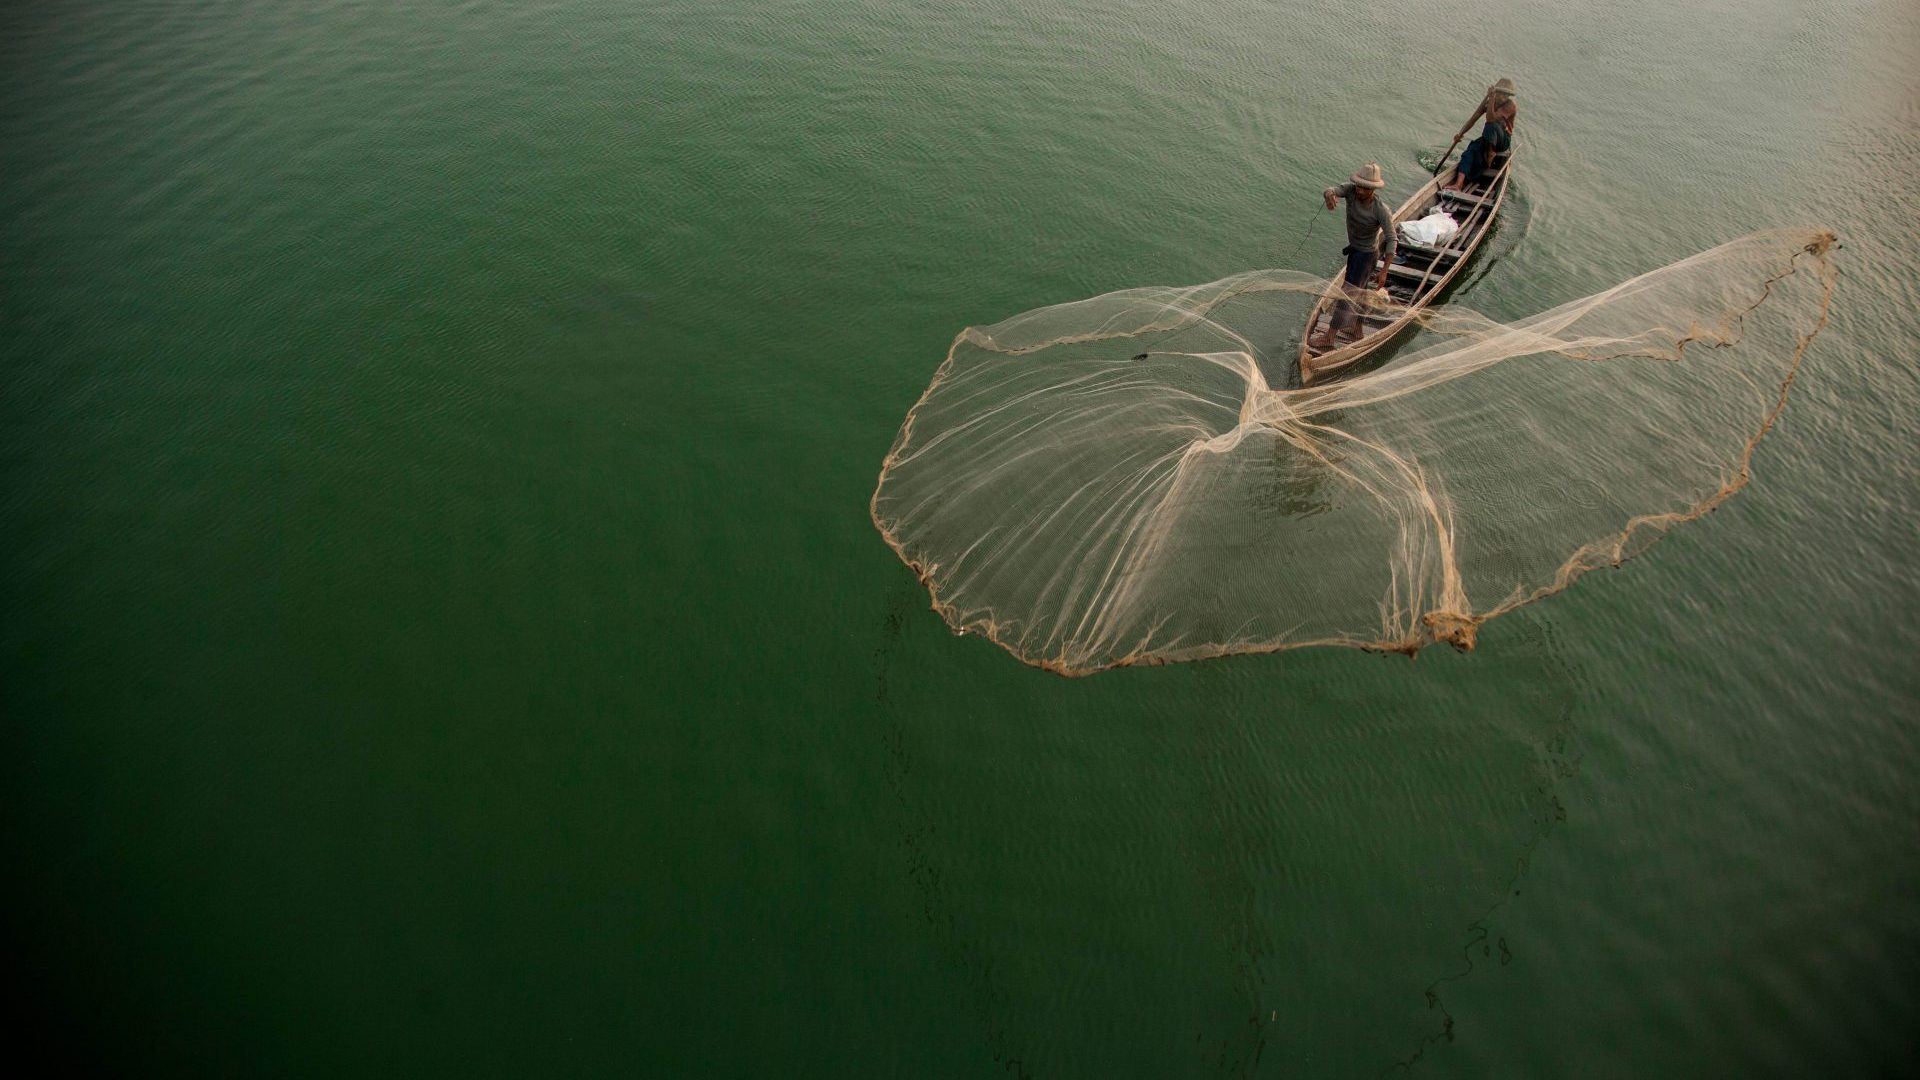 Fisherman casting net on Irrawaddy River, Mandalay, Myanmar with GeoEx